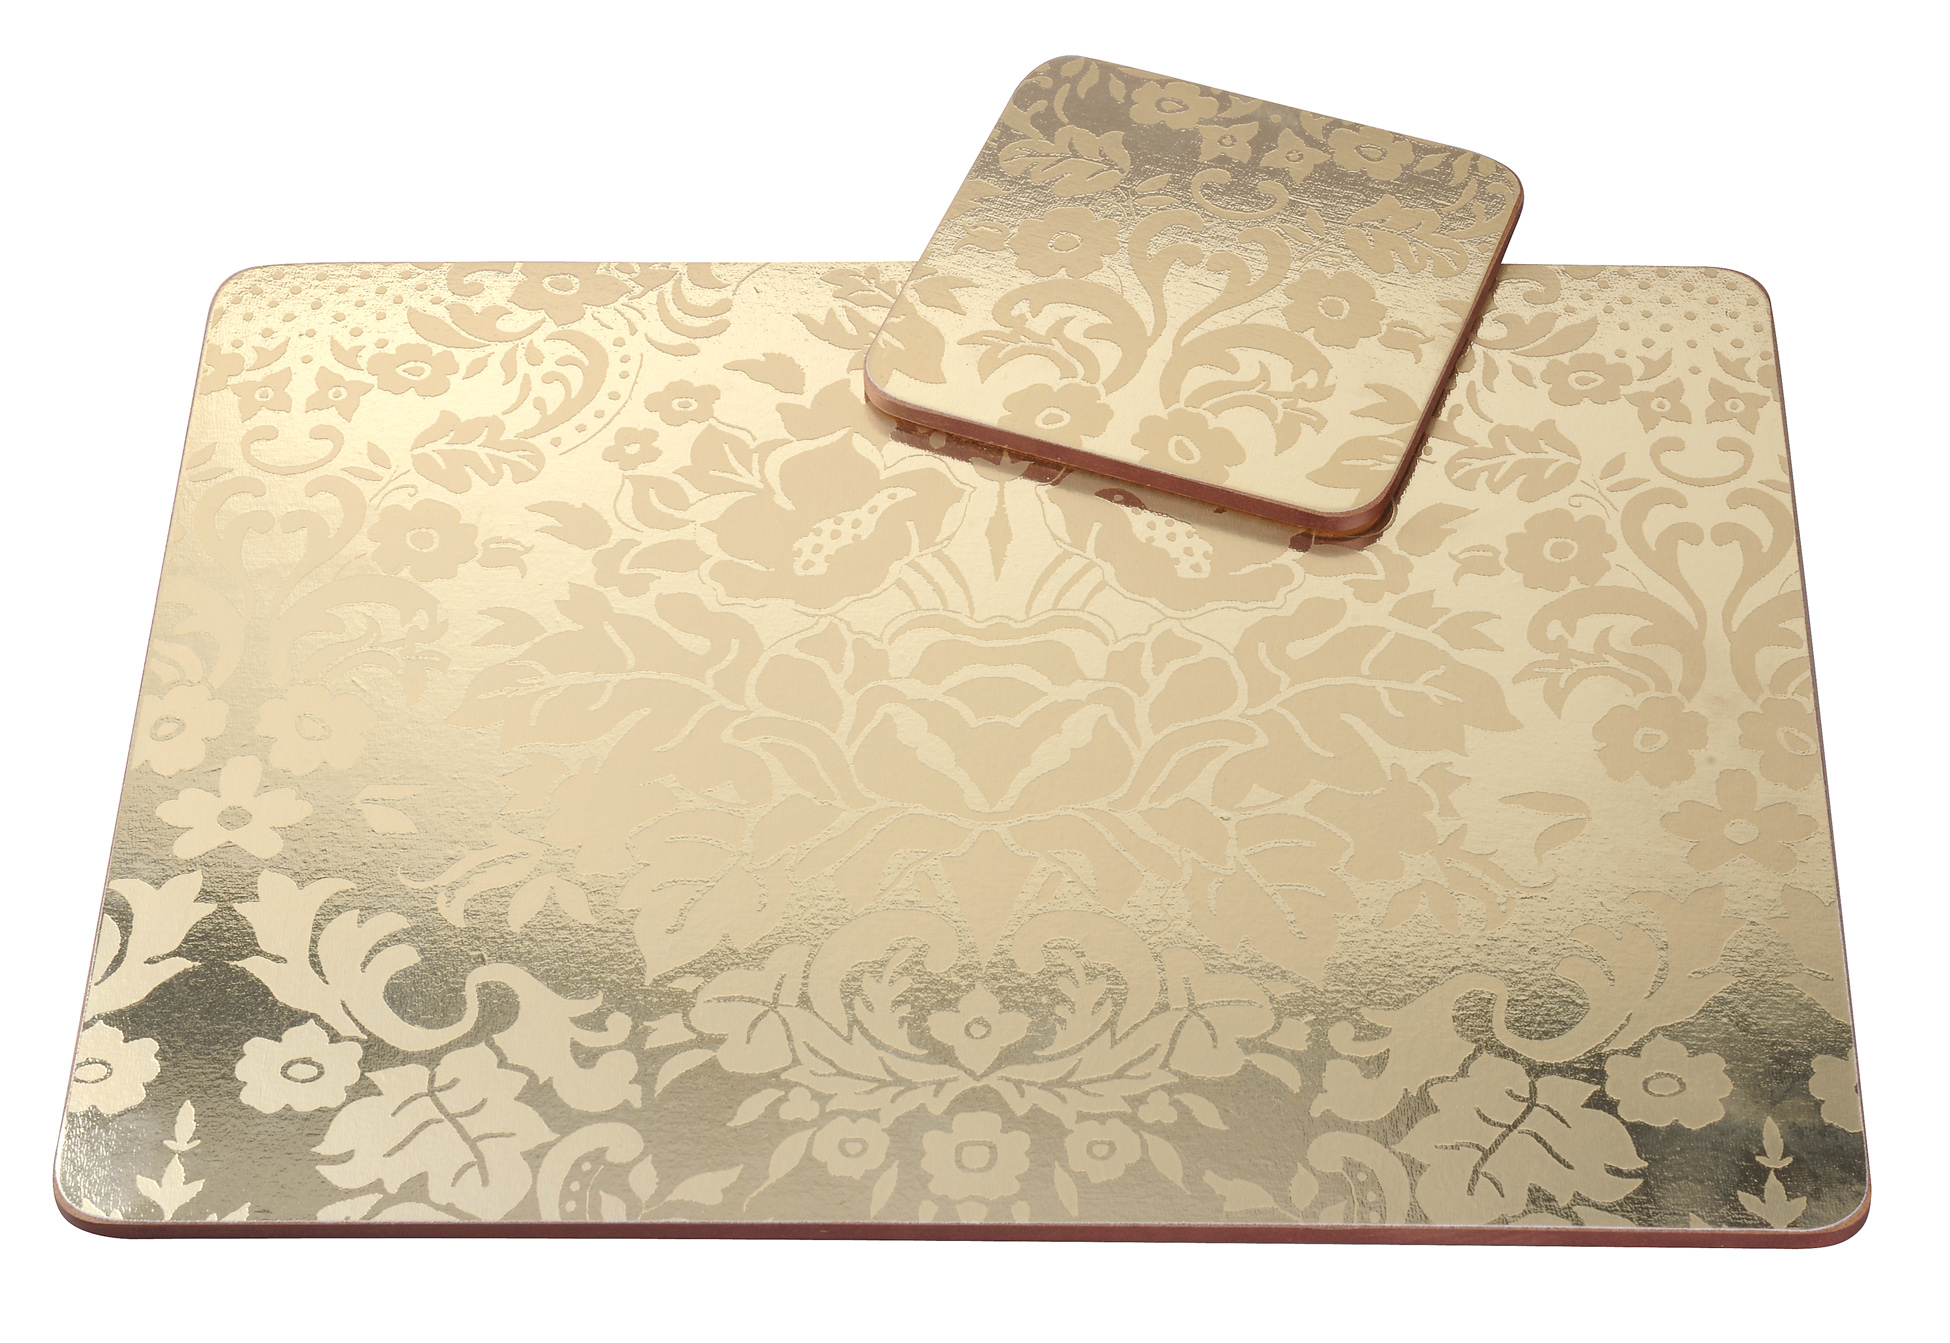 Pimpernel 4 X Damask Gold 305cm Placemats amp Coasters MDF